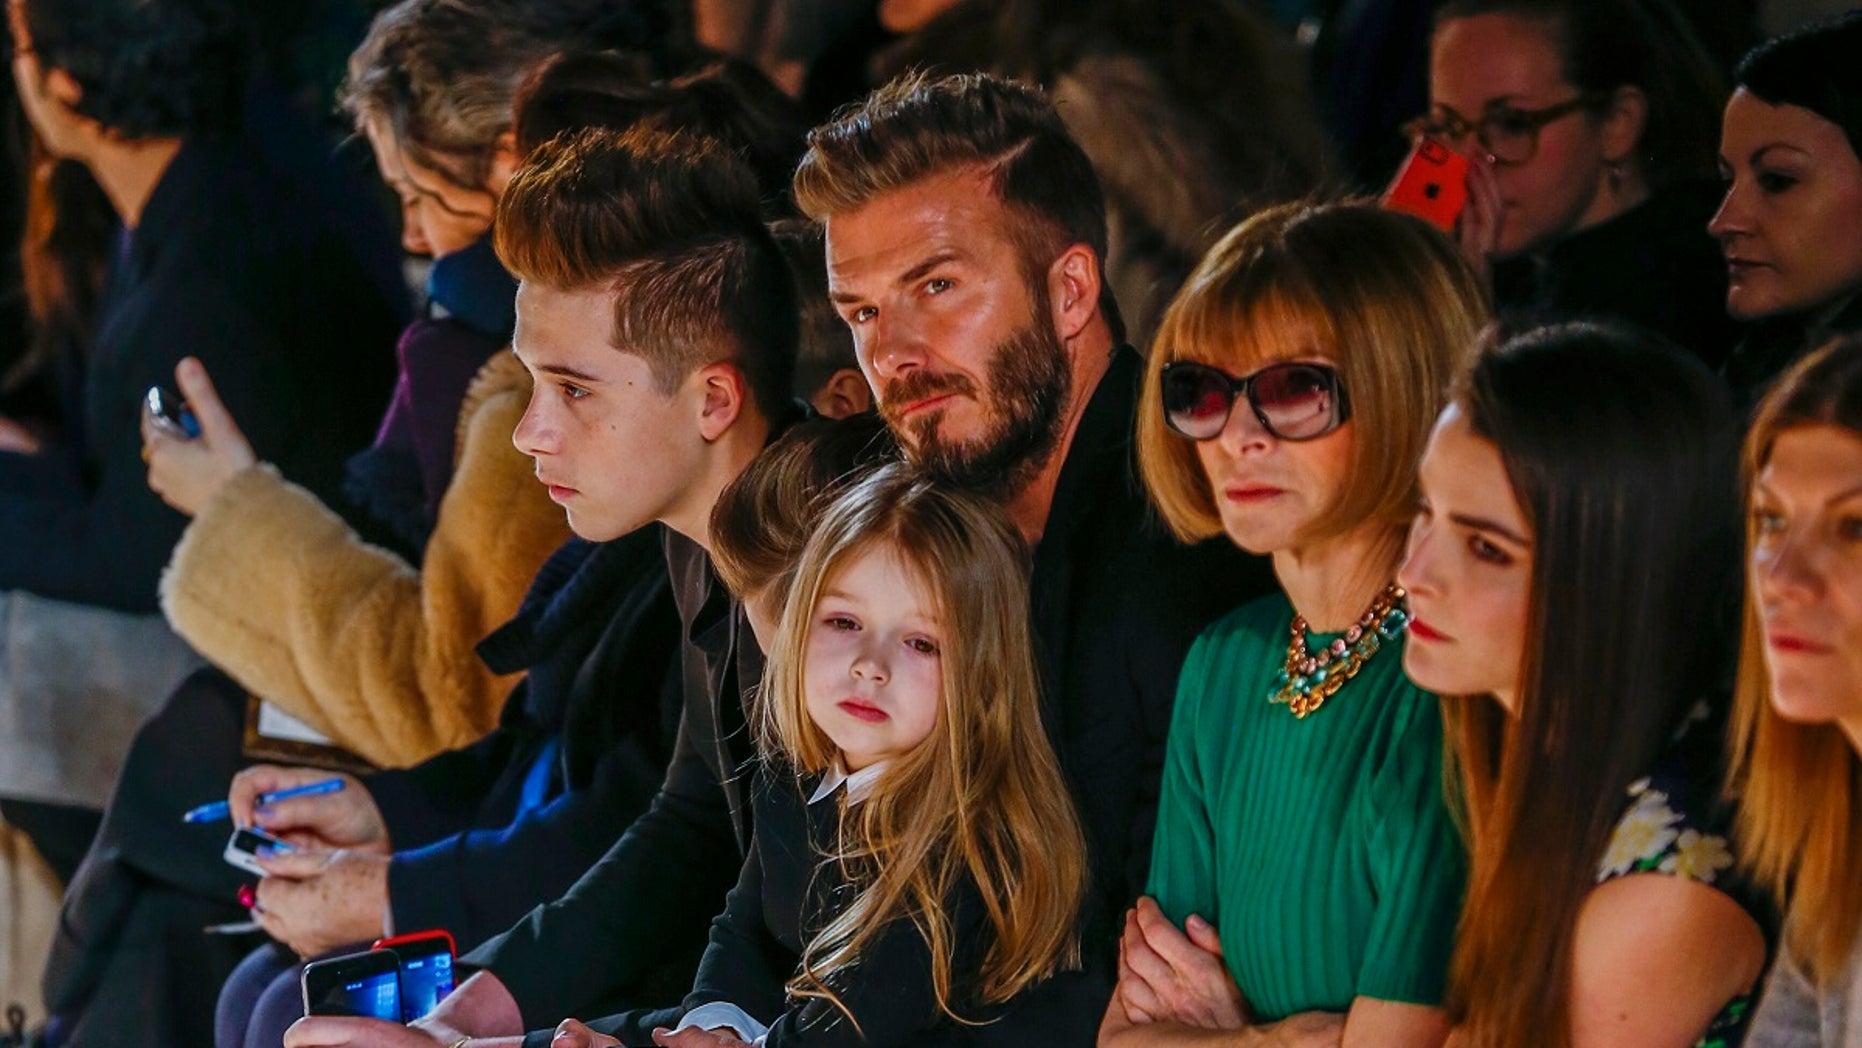 David Beckham with daughter, Harper, at New York Fashion Week event. (Reuters)